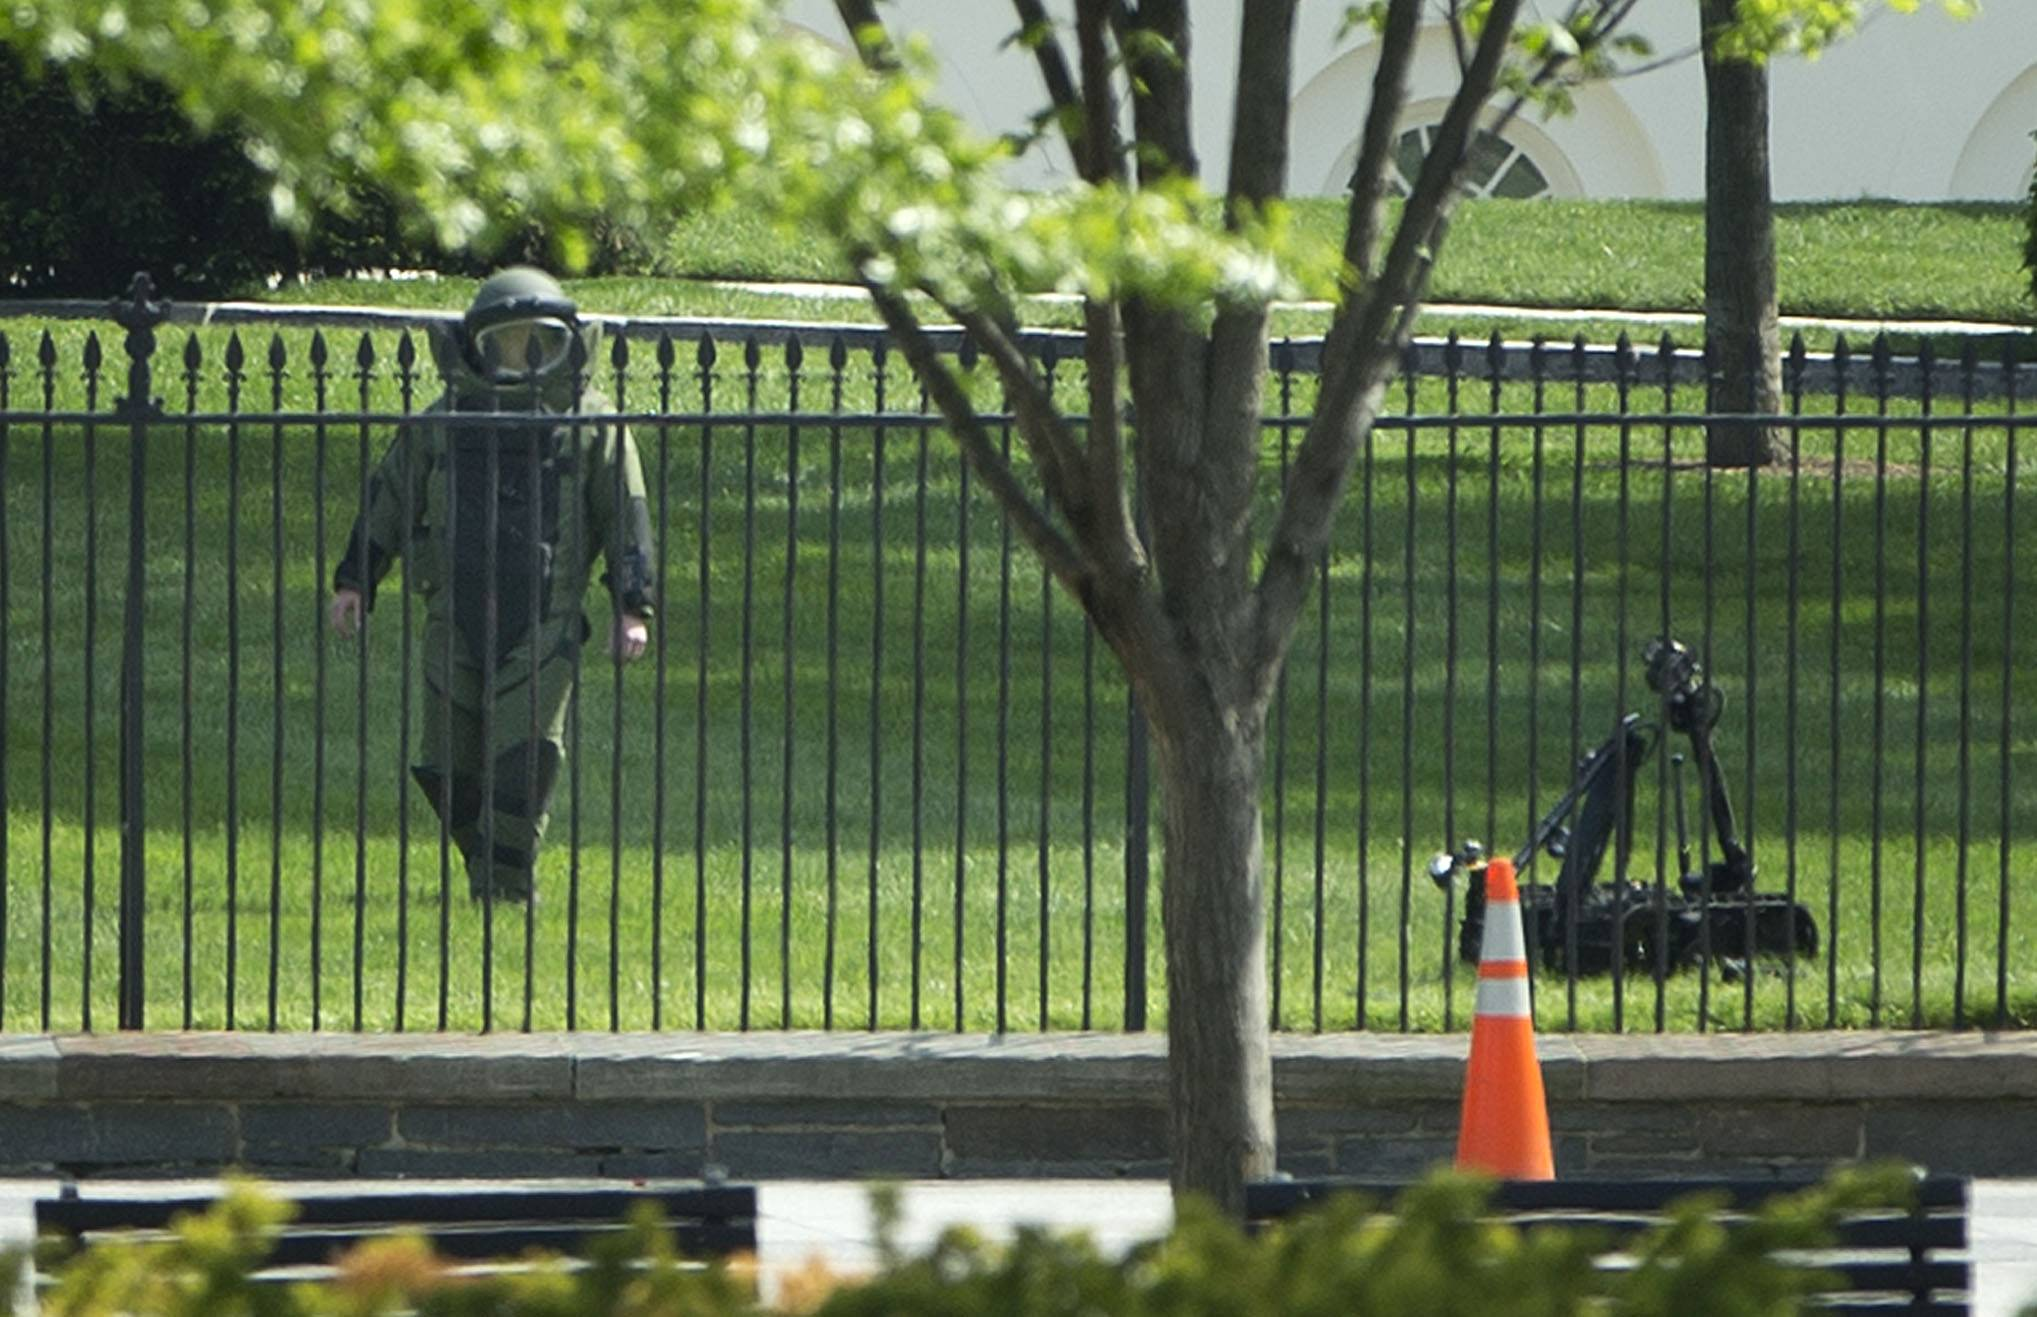 A bomb technician works with an explosives ordinance disposal robot to help recover an unknown item that was thrown over the fence Thursday on the north side of the White House in Washington. For the second time in three days, the White House was on lockdown because of a security breach. The Secret Service says two people threw something over the fence surrounding the White House complex — one person from the south side and one from the north. The two people were detained and questioned.